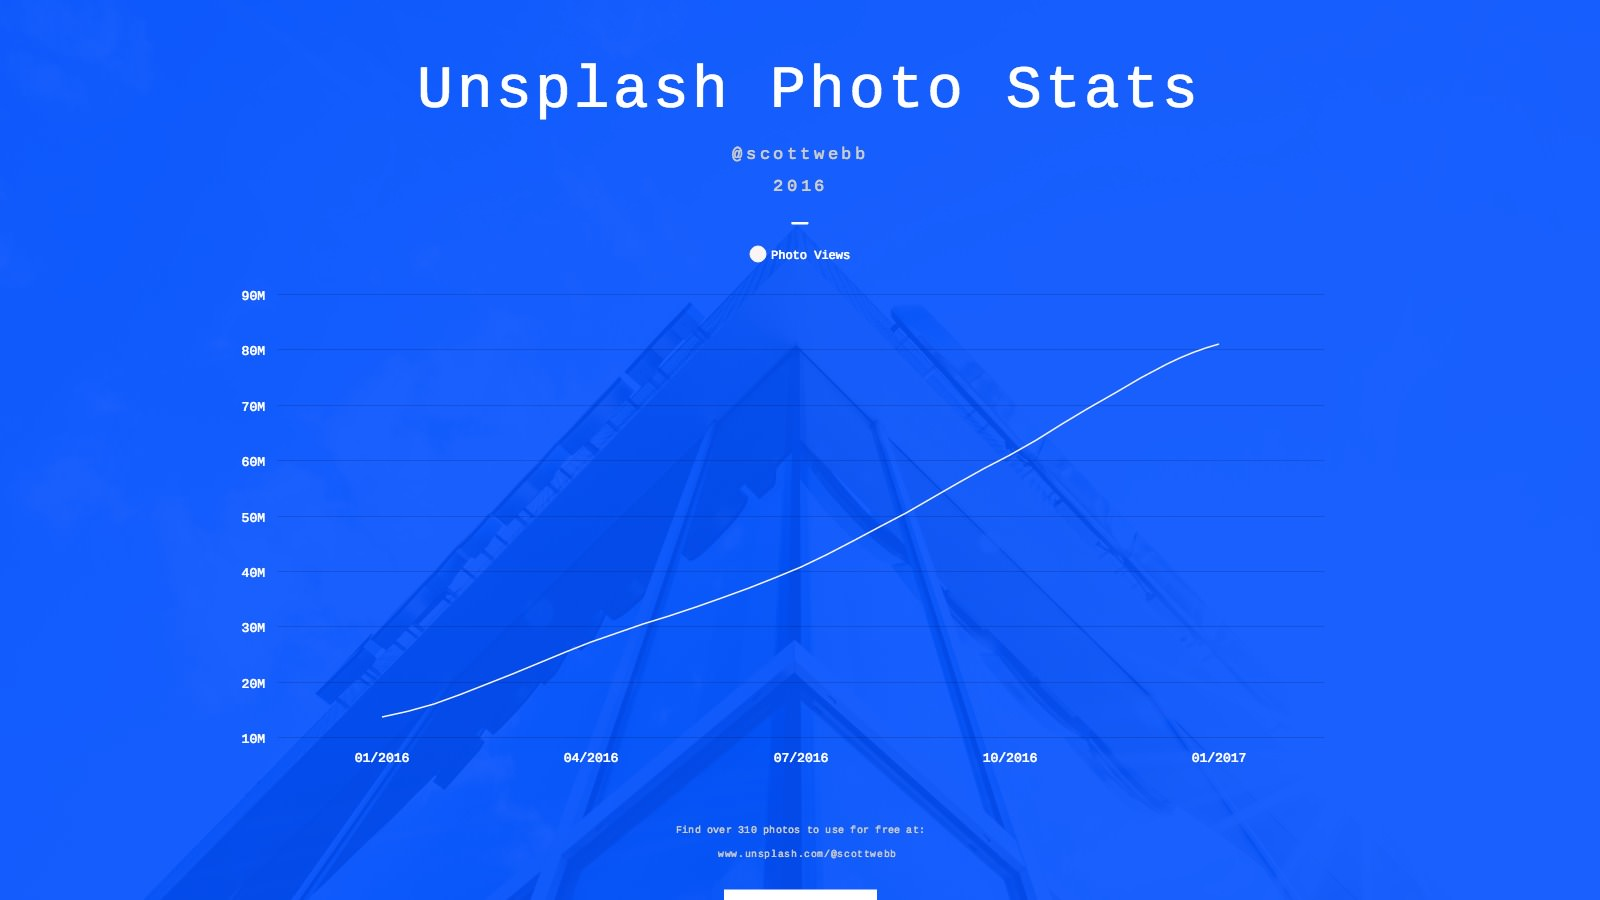 Unsplash Photo Views in 2016 for Scott Webb